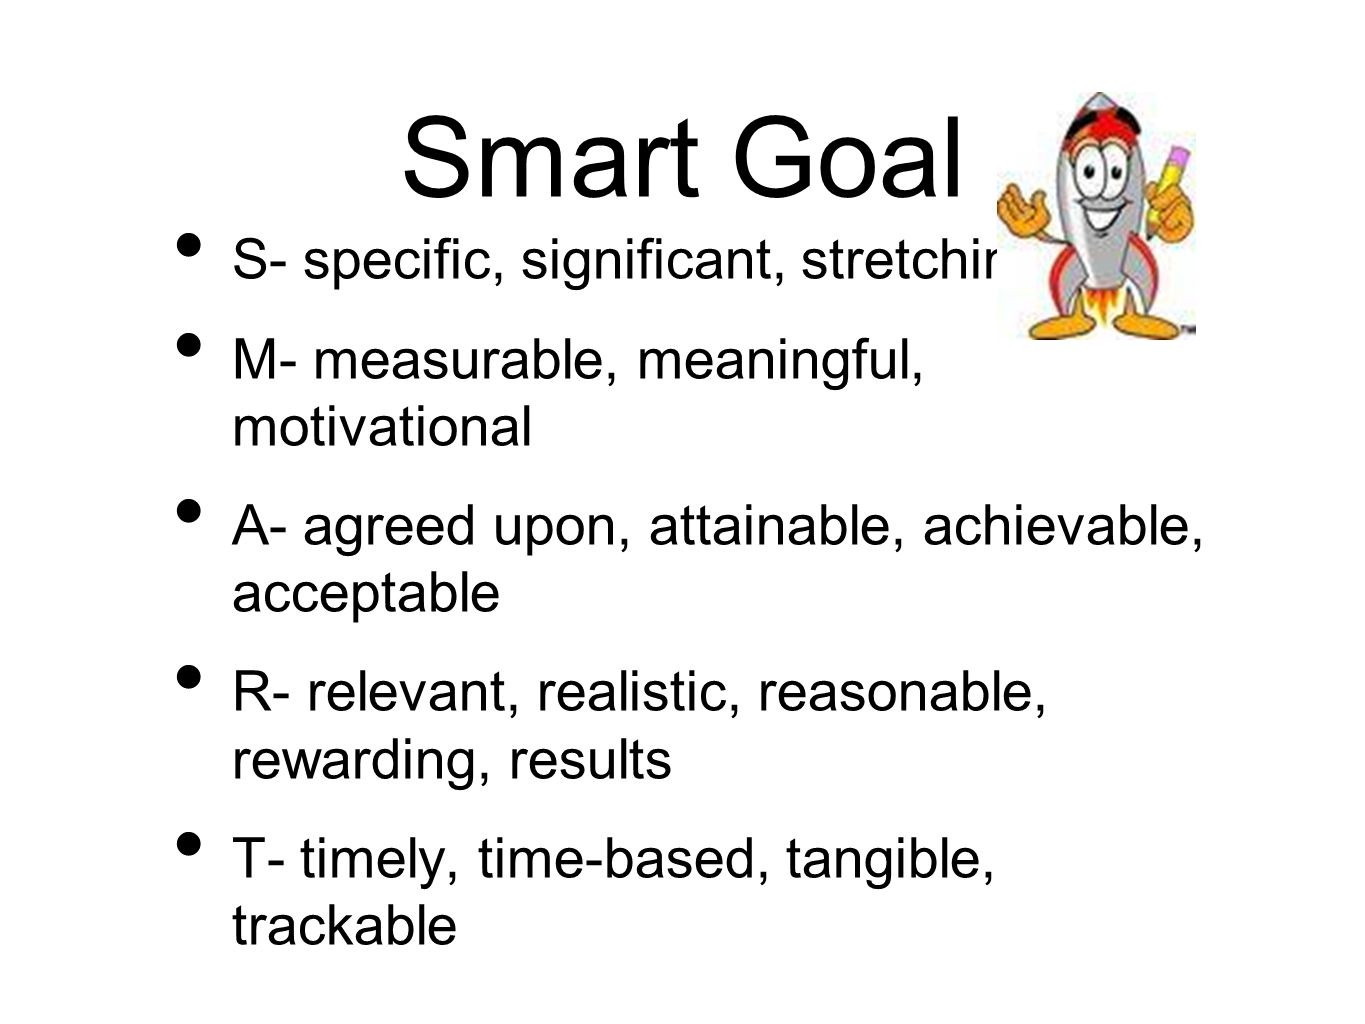 Smart Goal S- specific, significant, stretching M- measurable, meaningful, motivational A- agreed upon, attainable, achievable, acceptable R- relevant, realistic, reasonable, rewarding, results T- timely, time-based, tangible, trackable